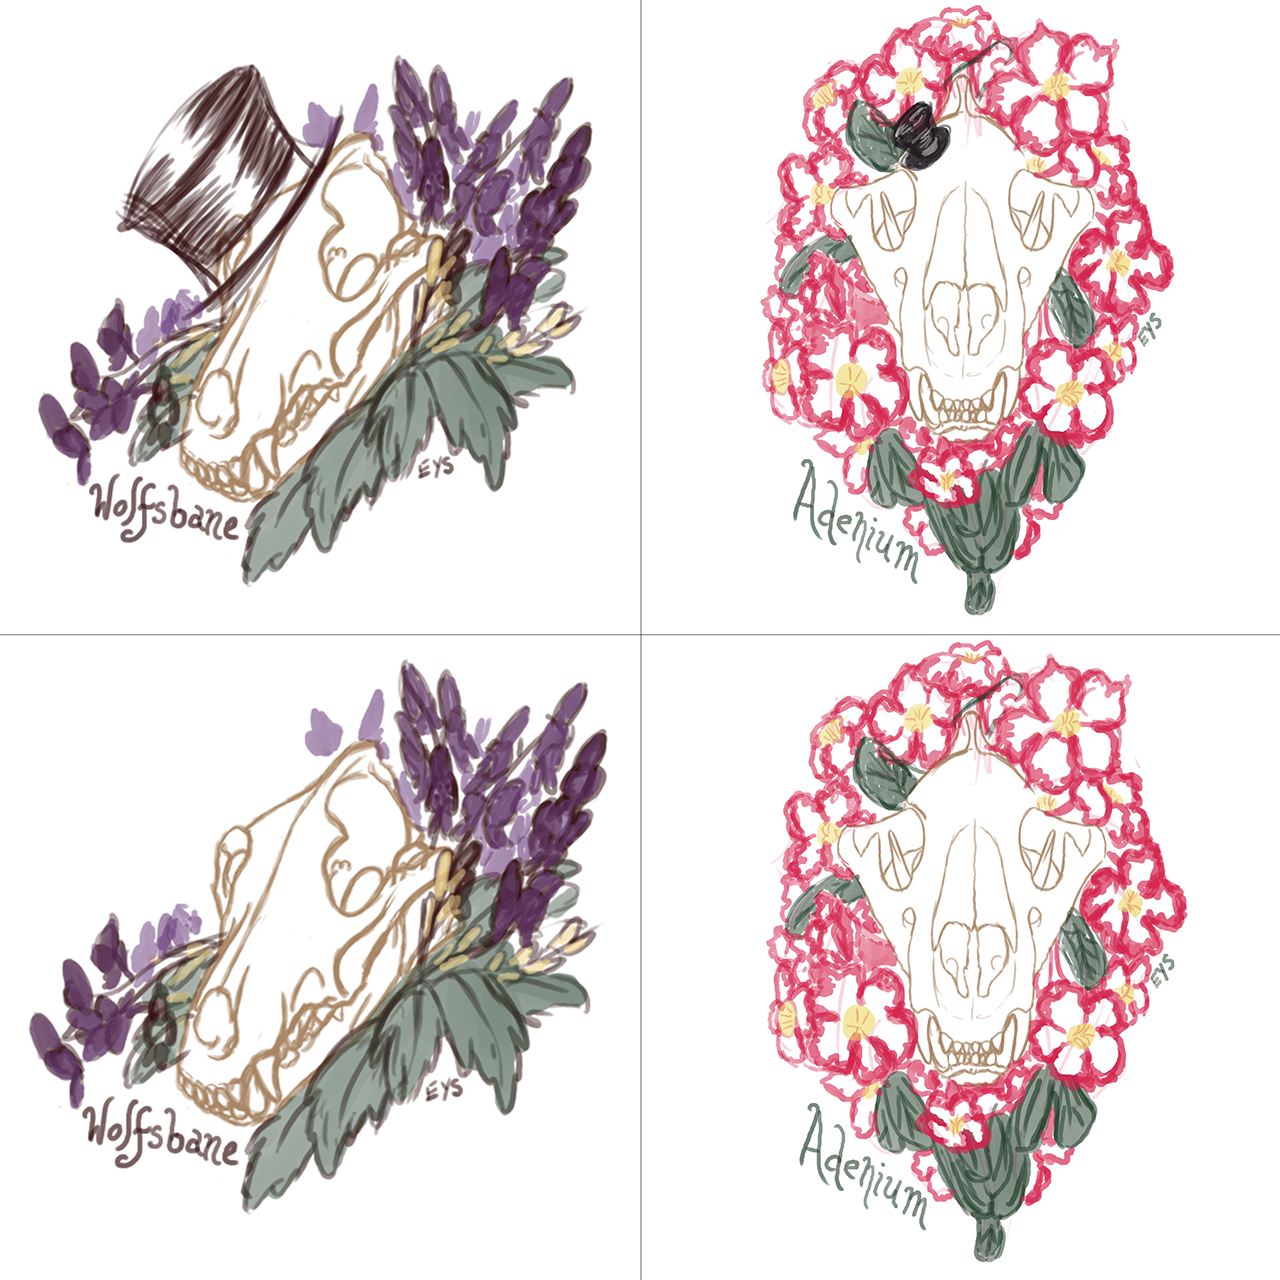 DeadlyFlowers-Tophatsornot.png